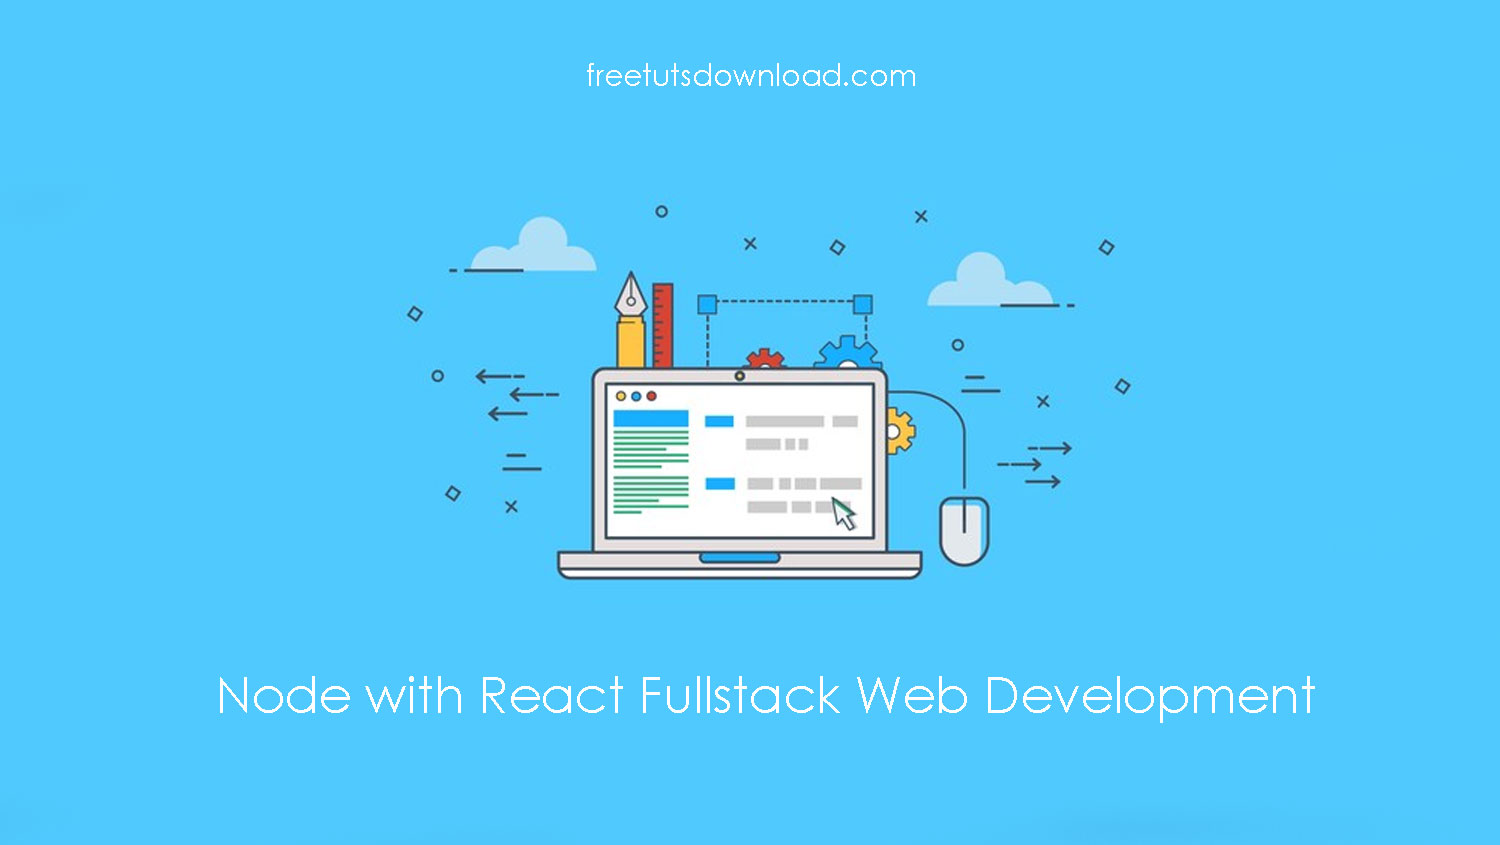 Node with React Fullstack Web Development free download